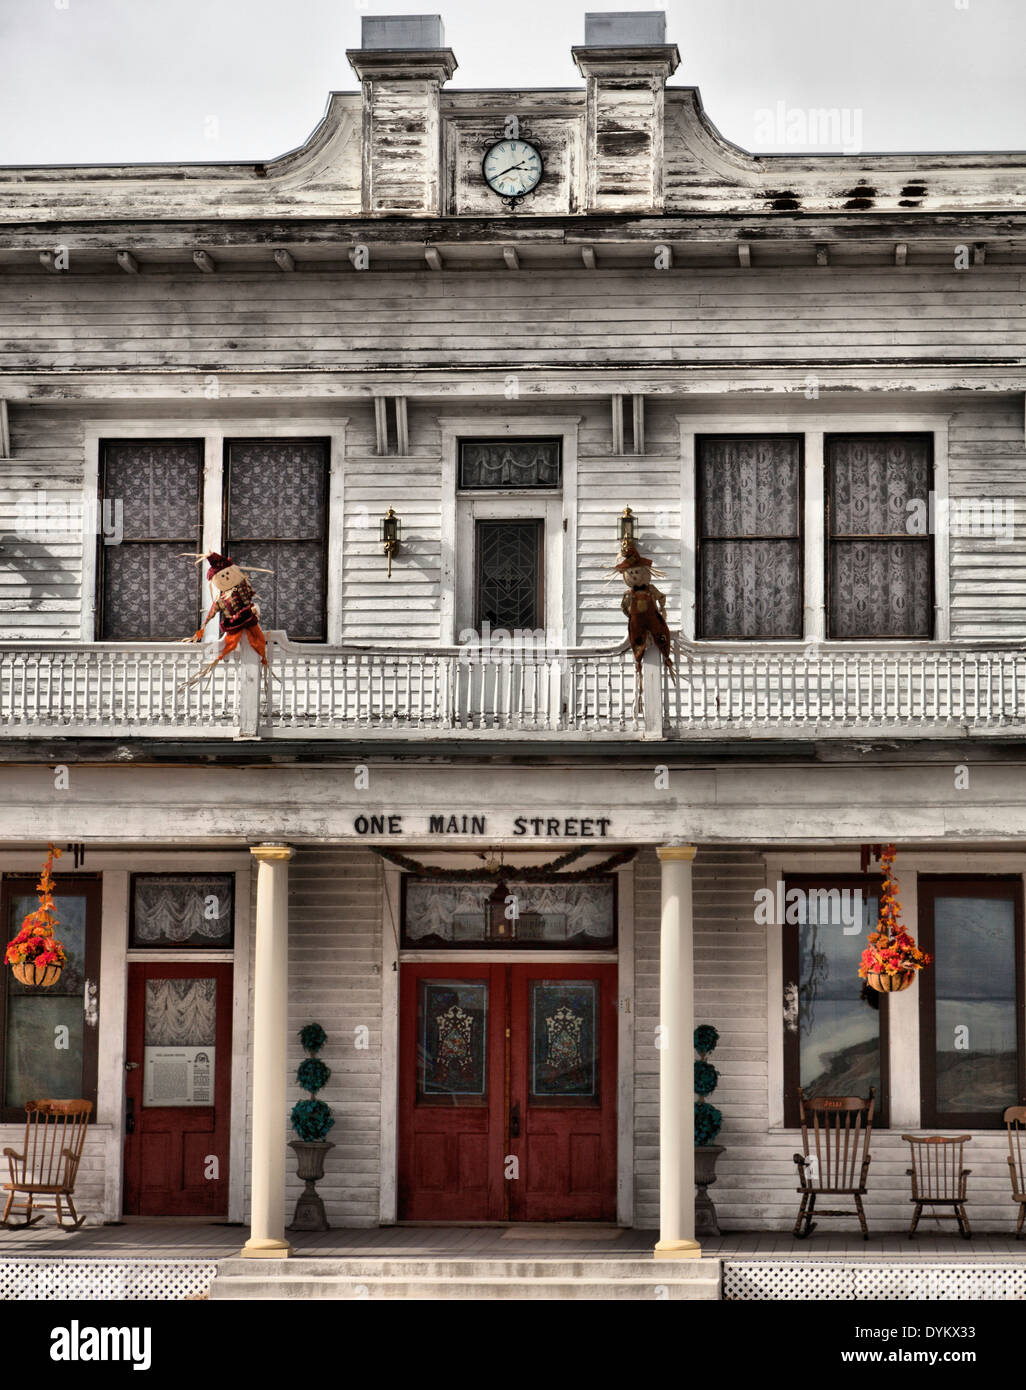 halloween decorations at the adams hotel a restored building on main street lavina montana usa america